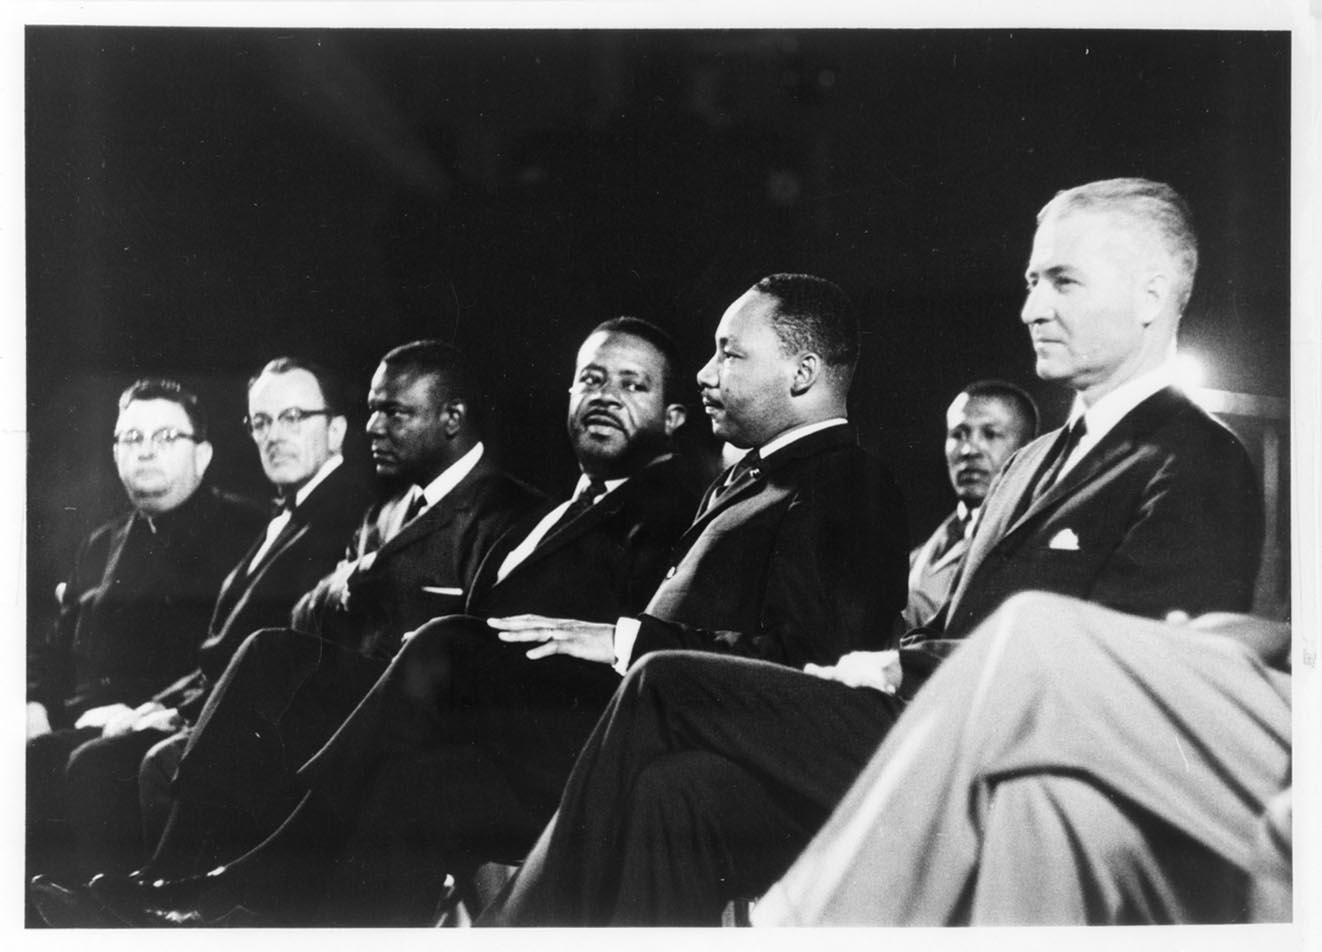 "From right to left: G. Homer Durham, Martin Luther King, Jr., Ralph Abernathy, an unidentified participant, Rev. Louis Eaton and Msgr. Robert Donahoe at Goodwin Stadium, Arizona State University. Martin Luther King addressed an audience of 8,000 people on the topic ""Religious Witness for Human Dignity."" June 3, 1964 Photo by: MRD #2, Monsignor Robert Donahoe Collection, Arizona Collection, Arizona State University Libraries"